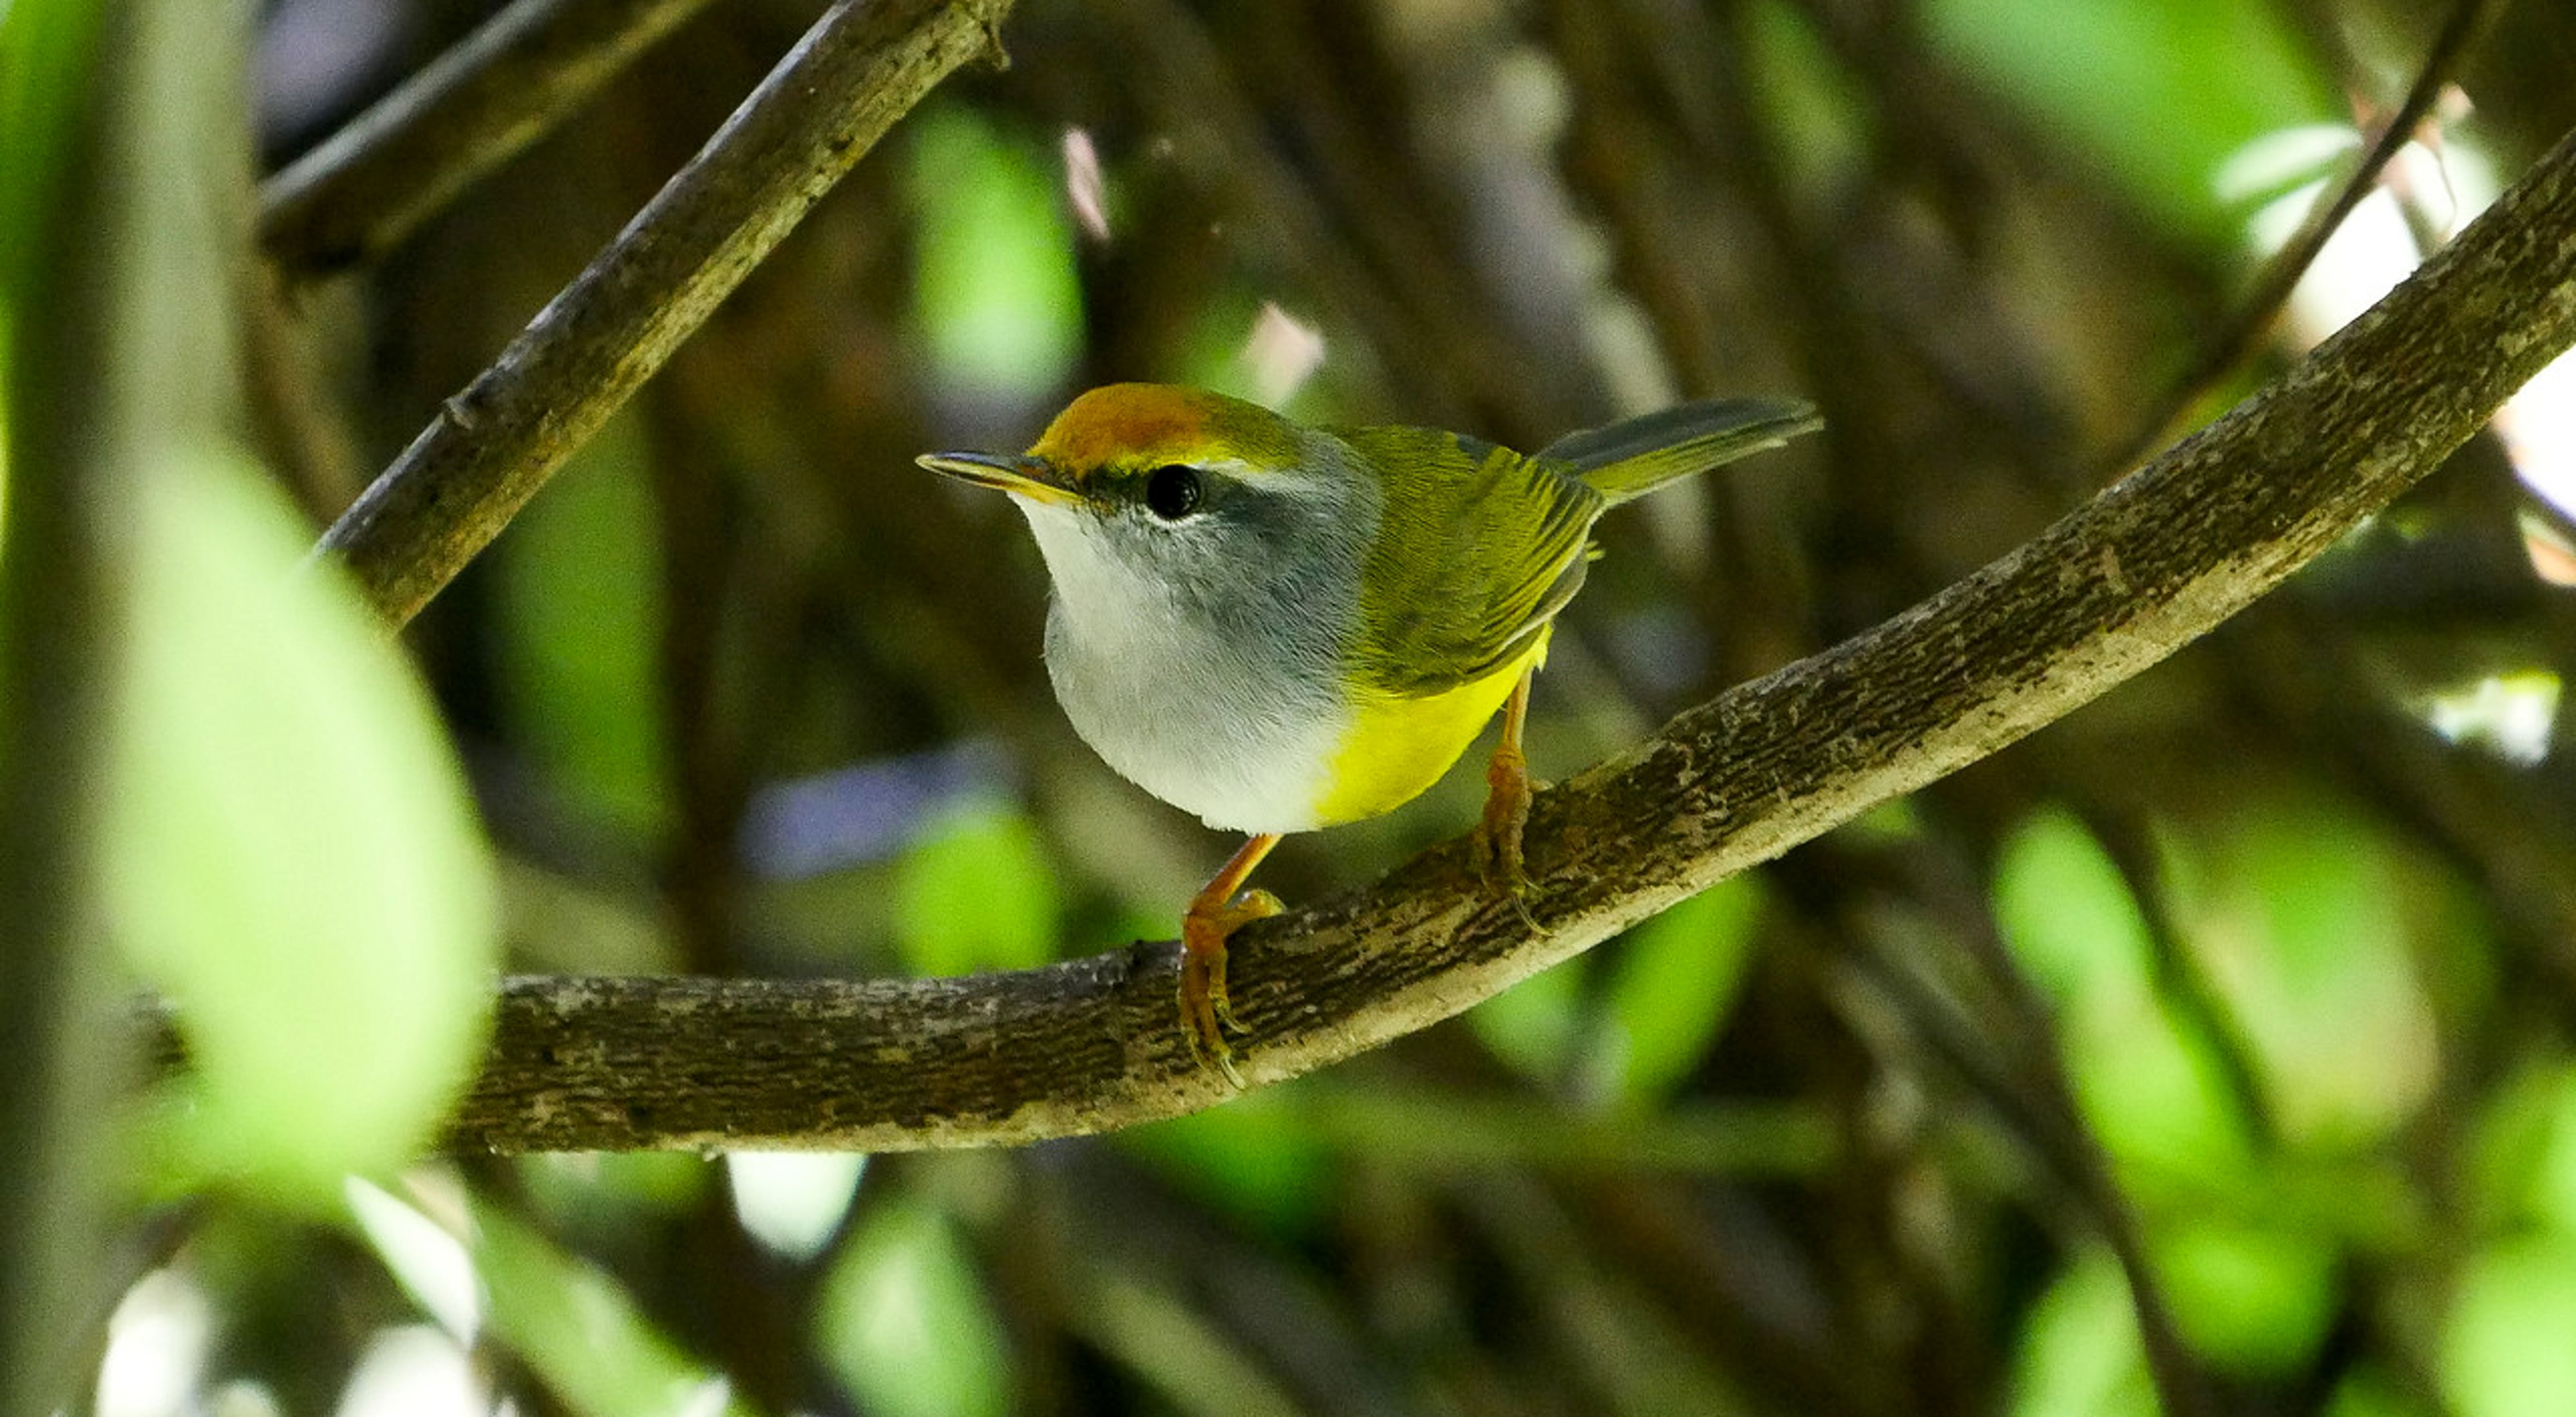 Secretive, yellow-colored warbler